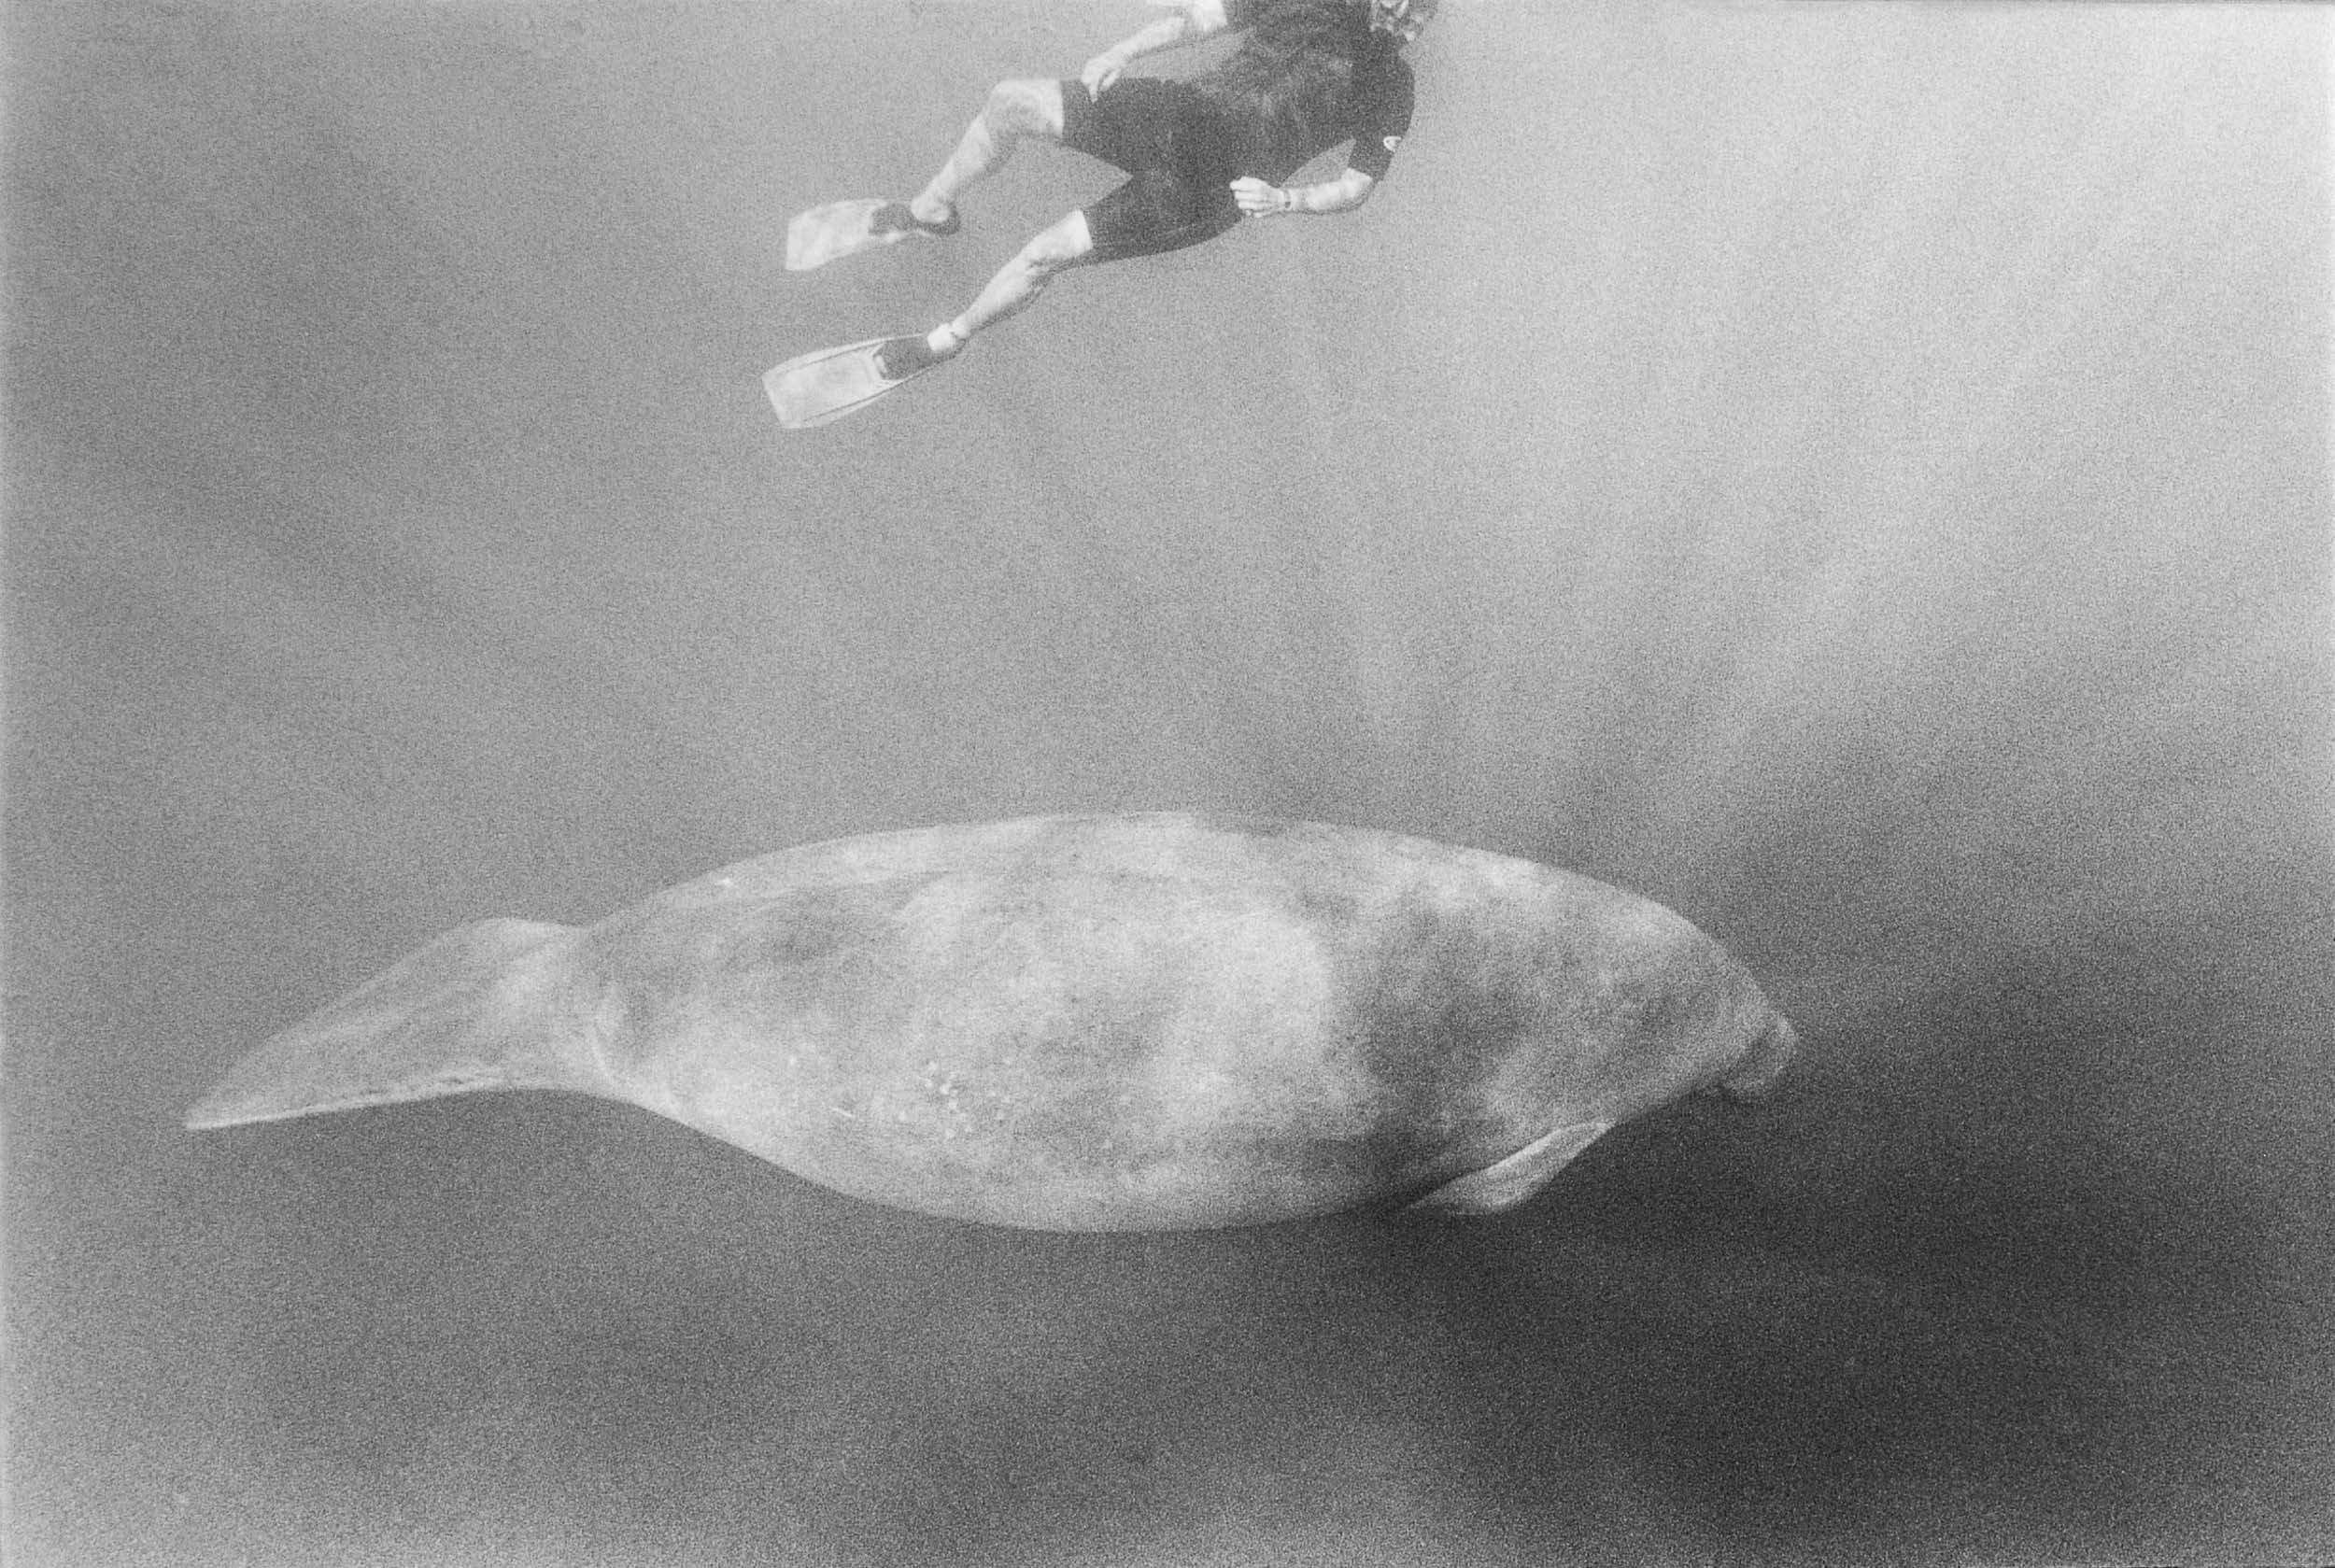 Barbara Alper- Photo of Manatee and person swimming in Crystal River Florida